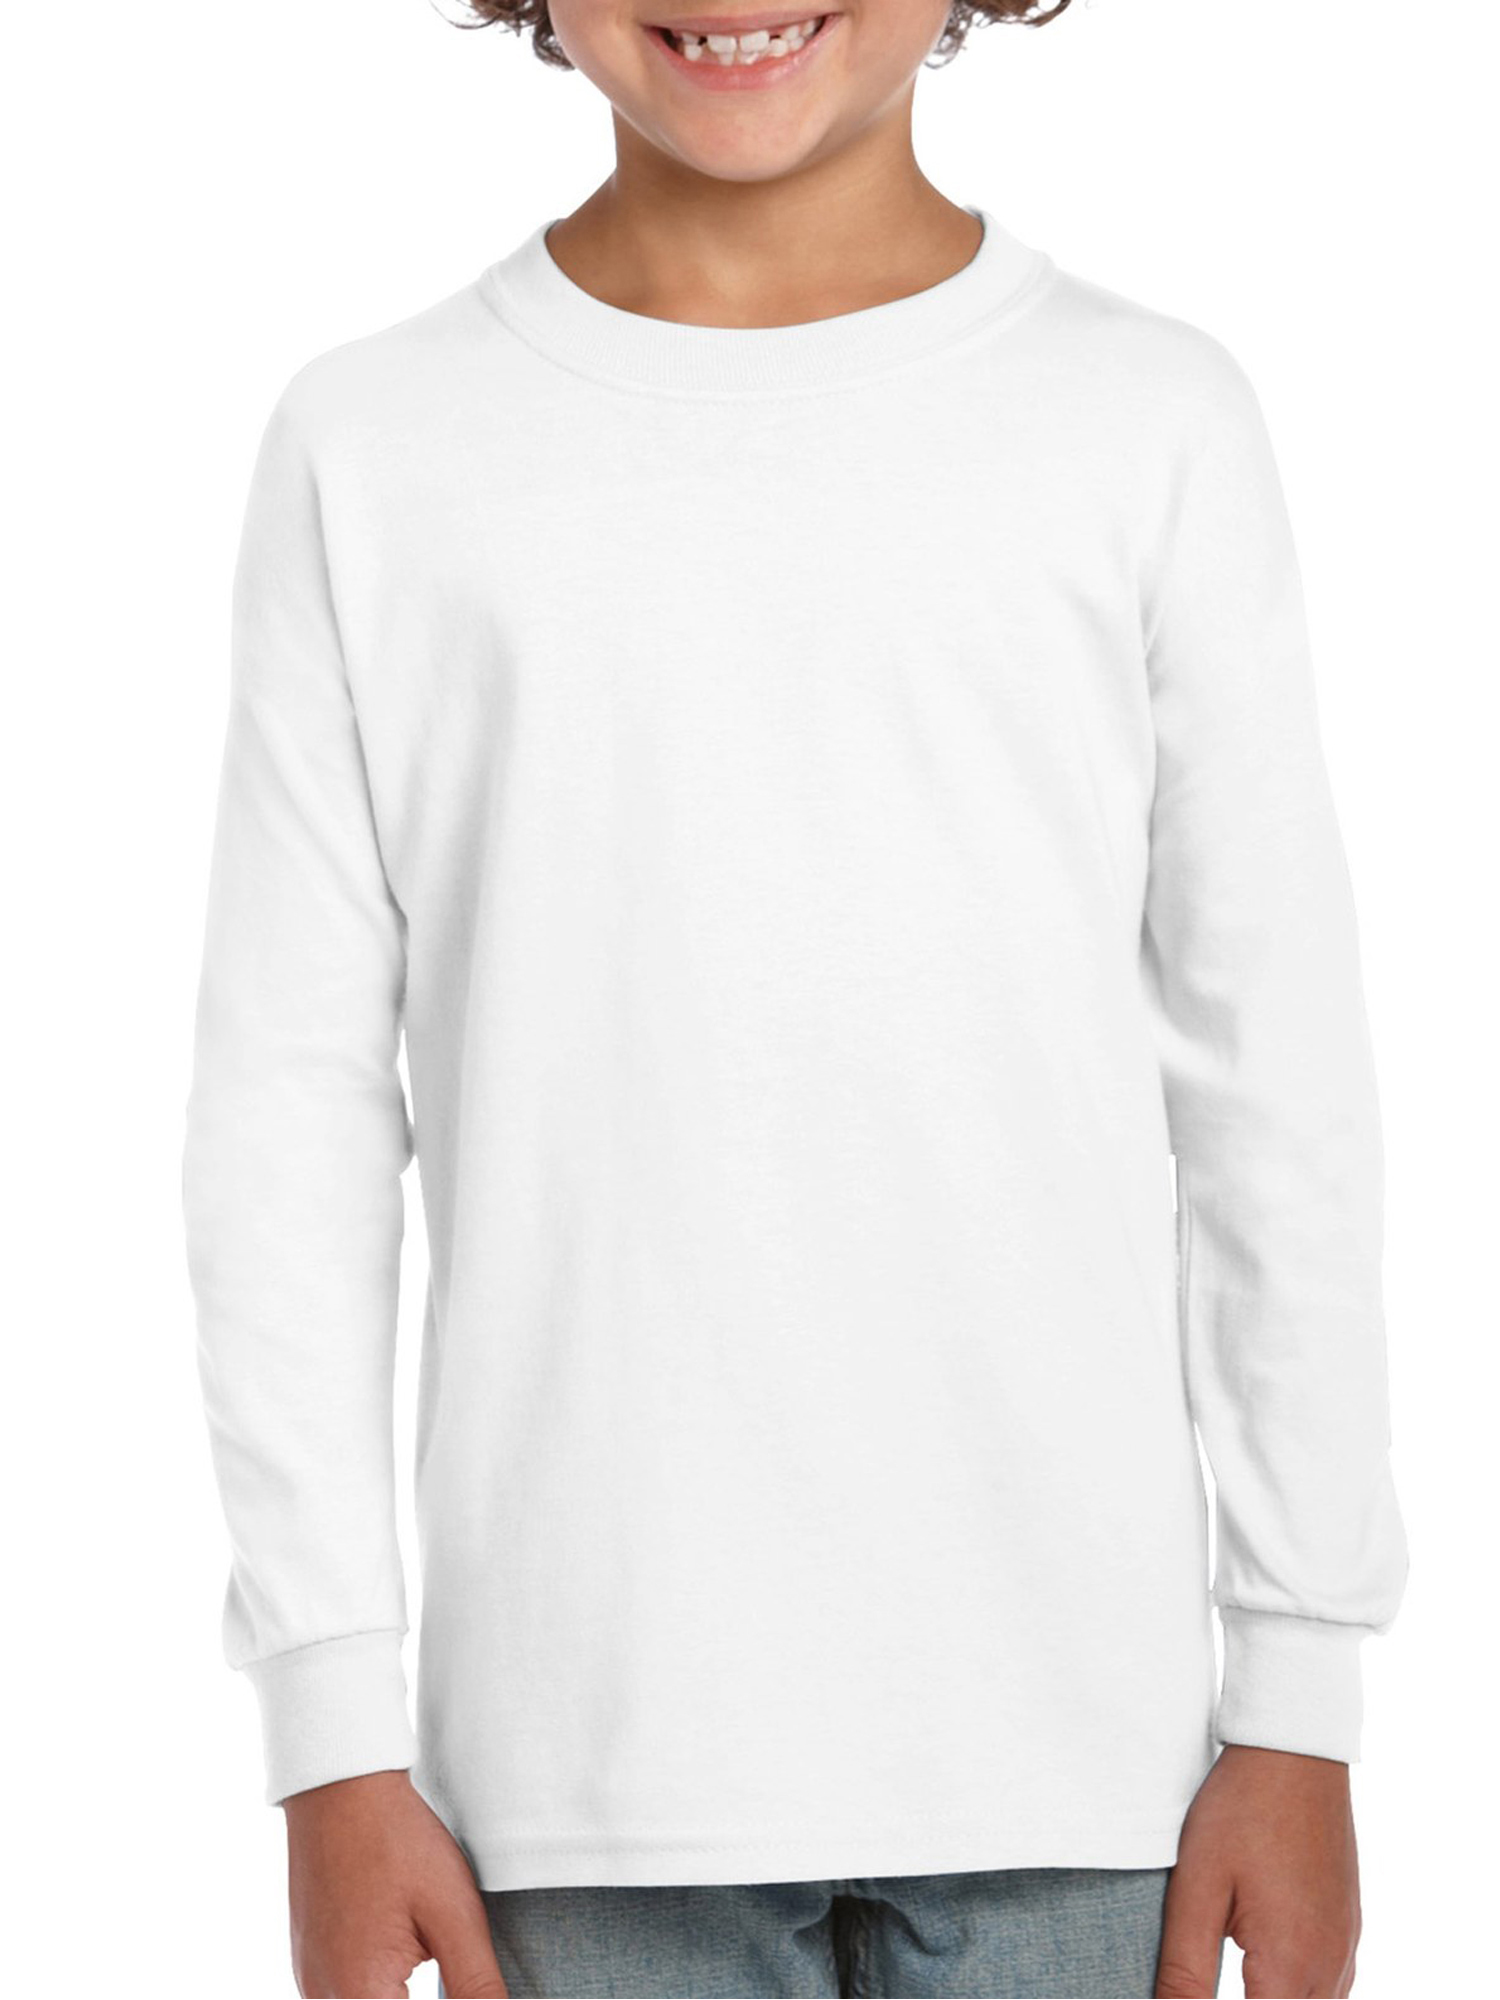 Ultra Cotton Youth Long Sleeve T-Shirt, 2-Pack Set (Big Boys)